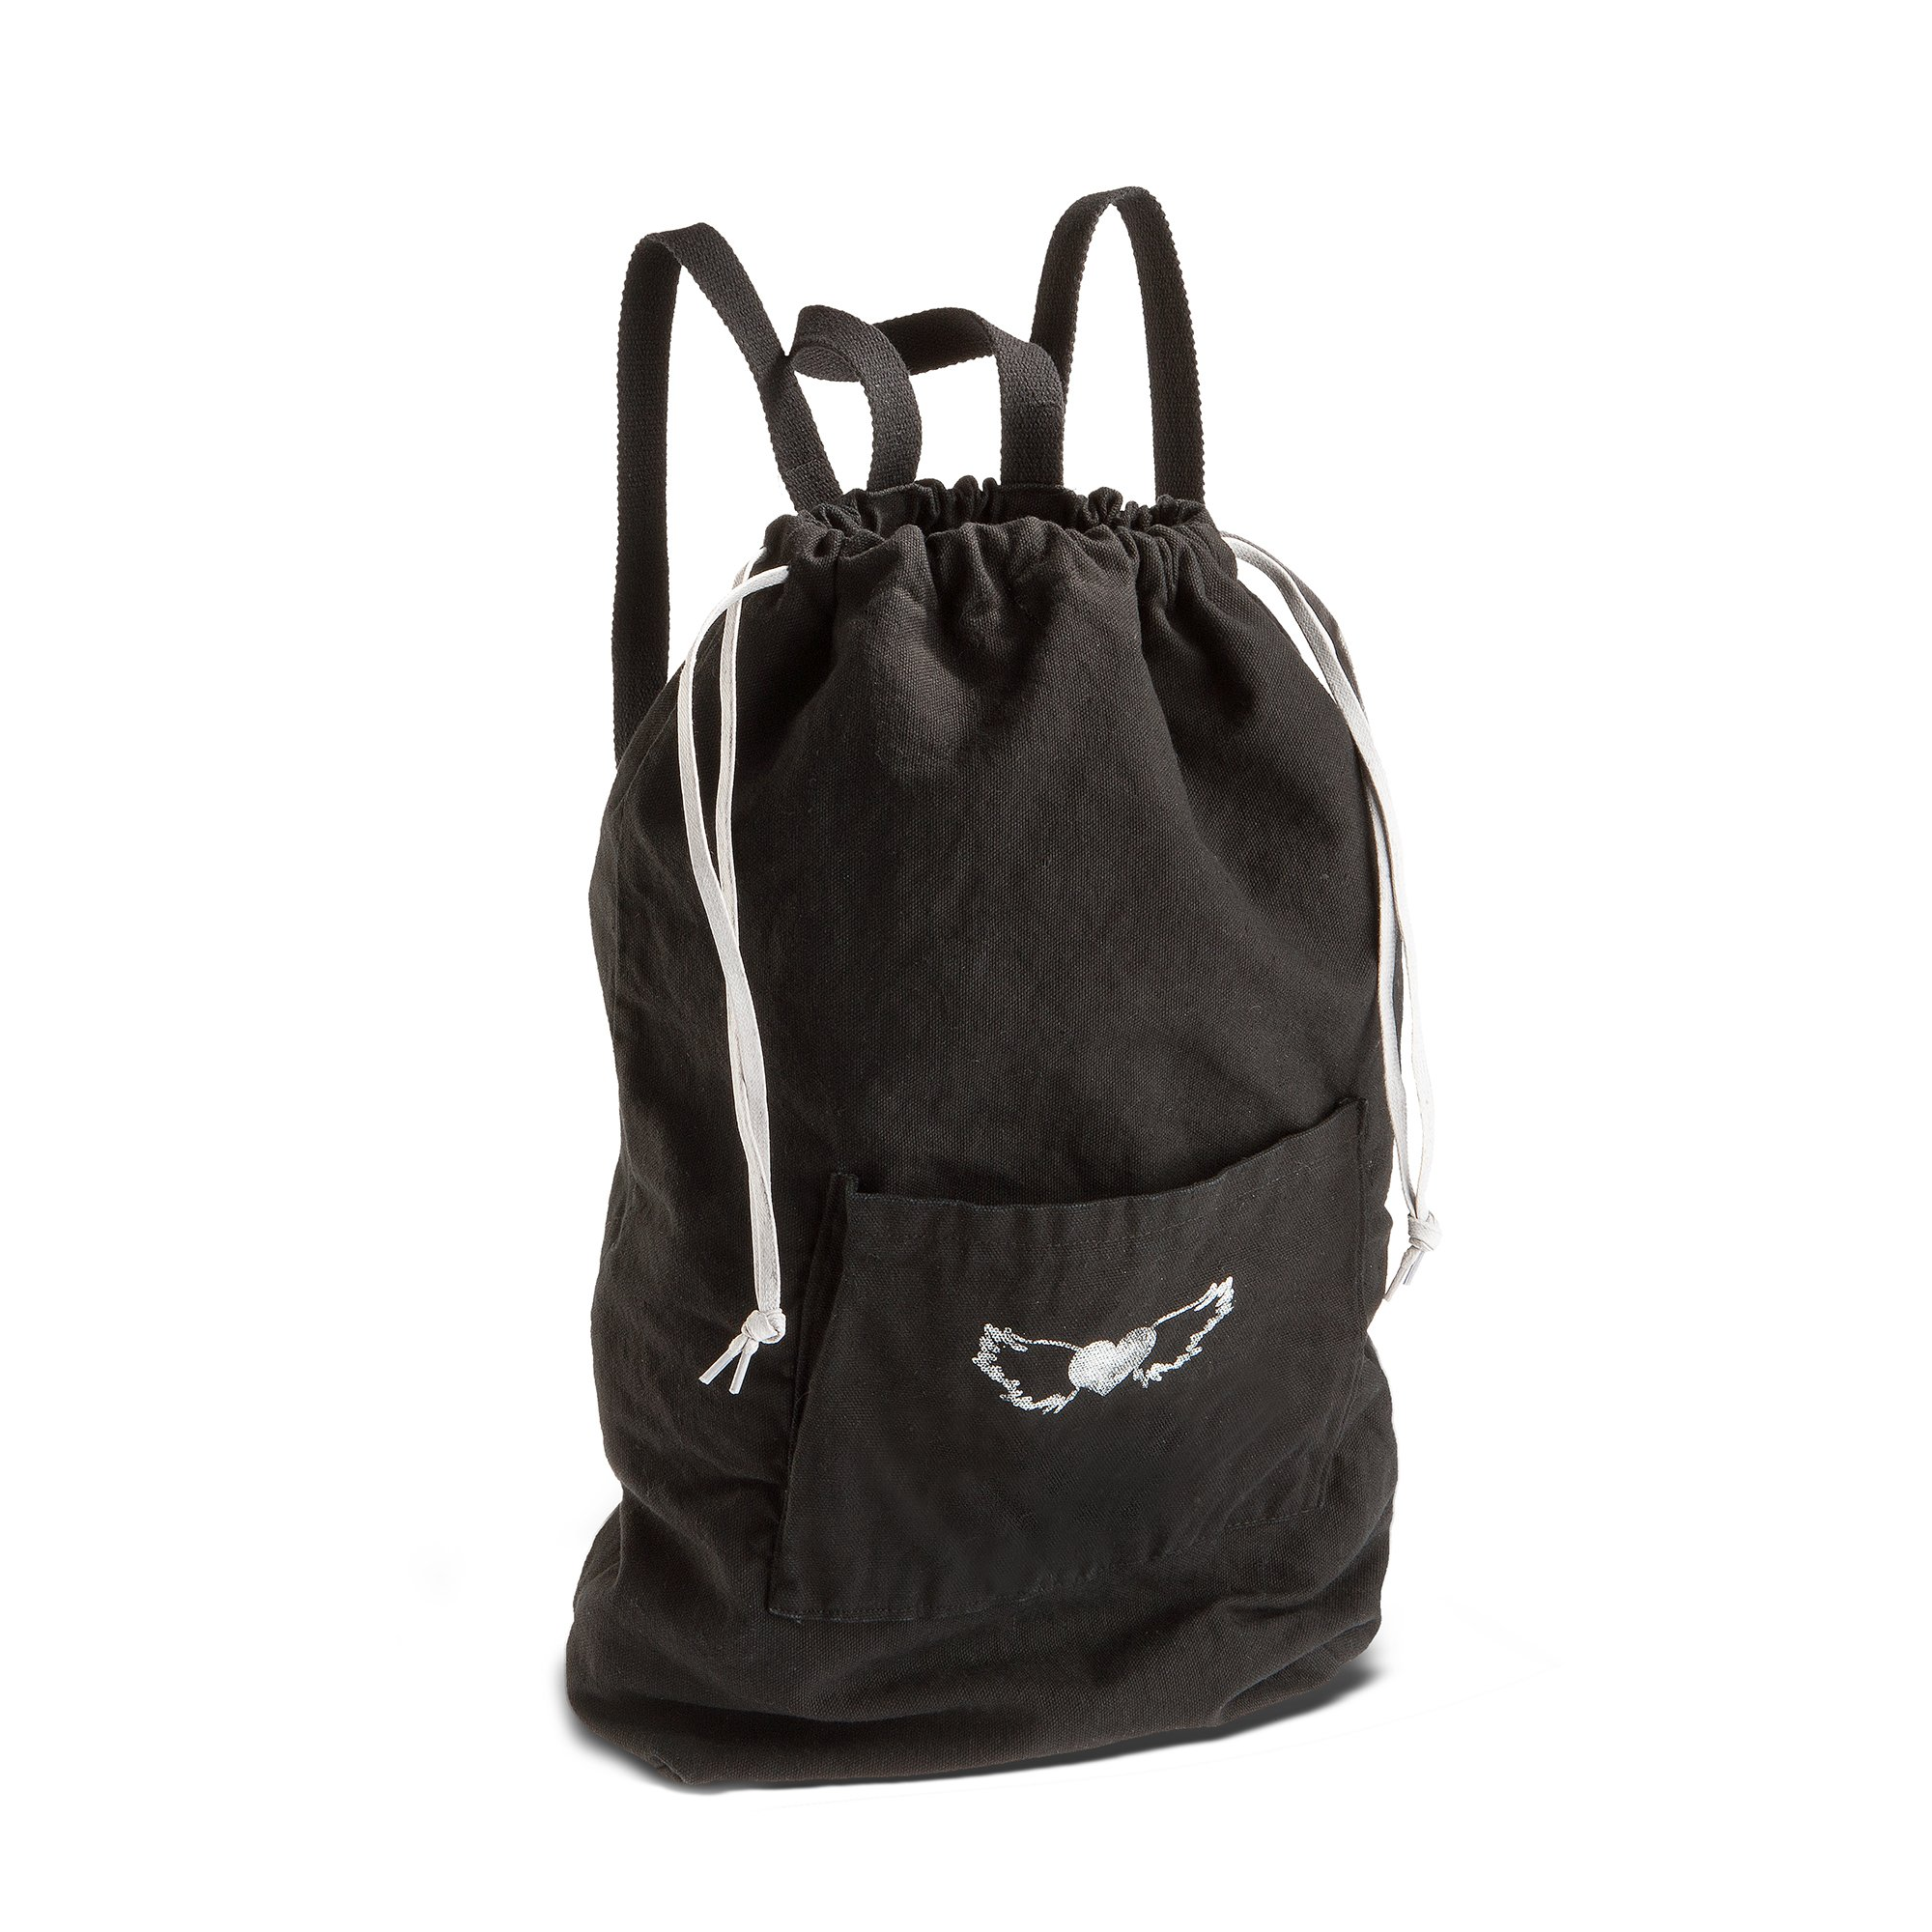 Linea BACK PACK image 1